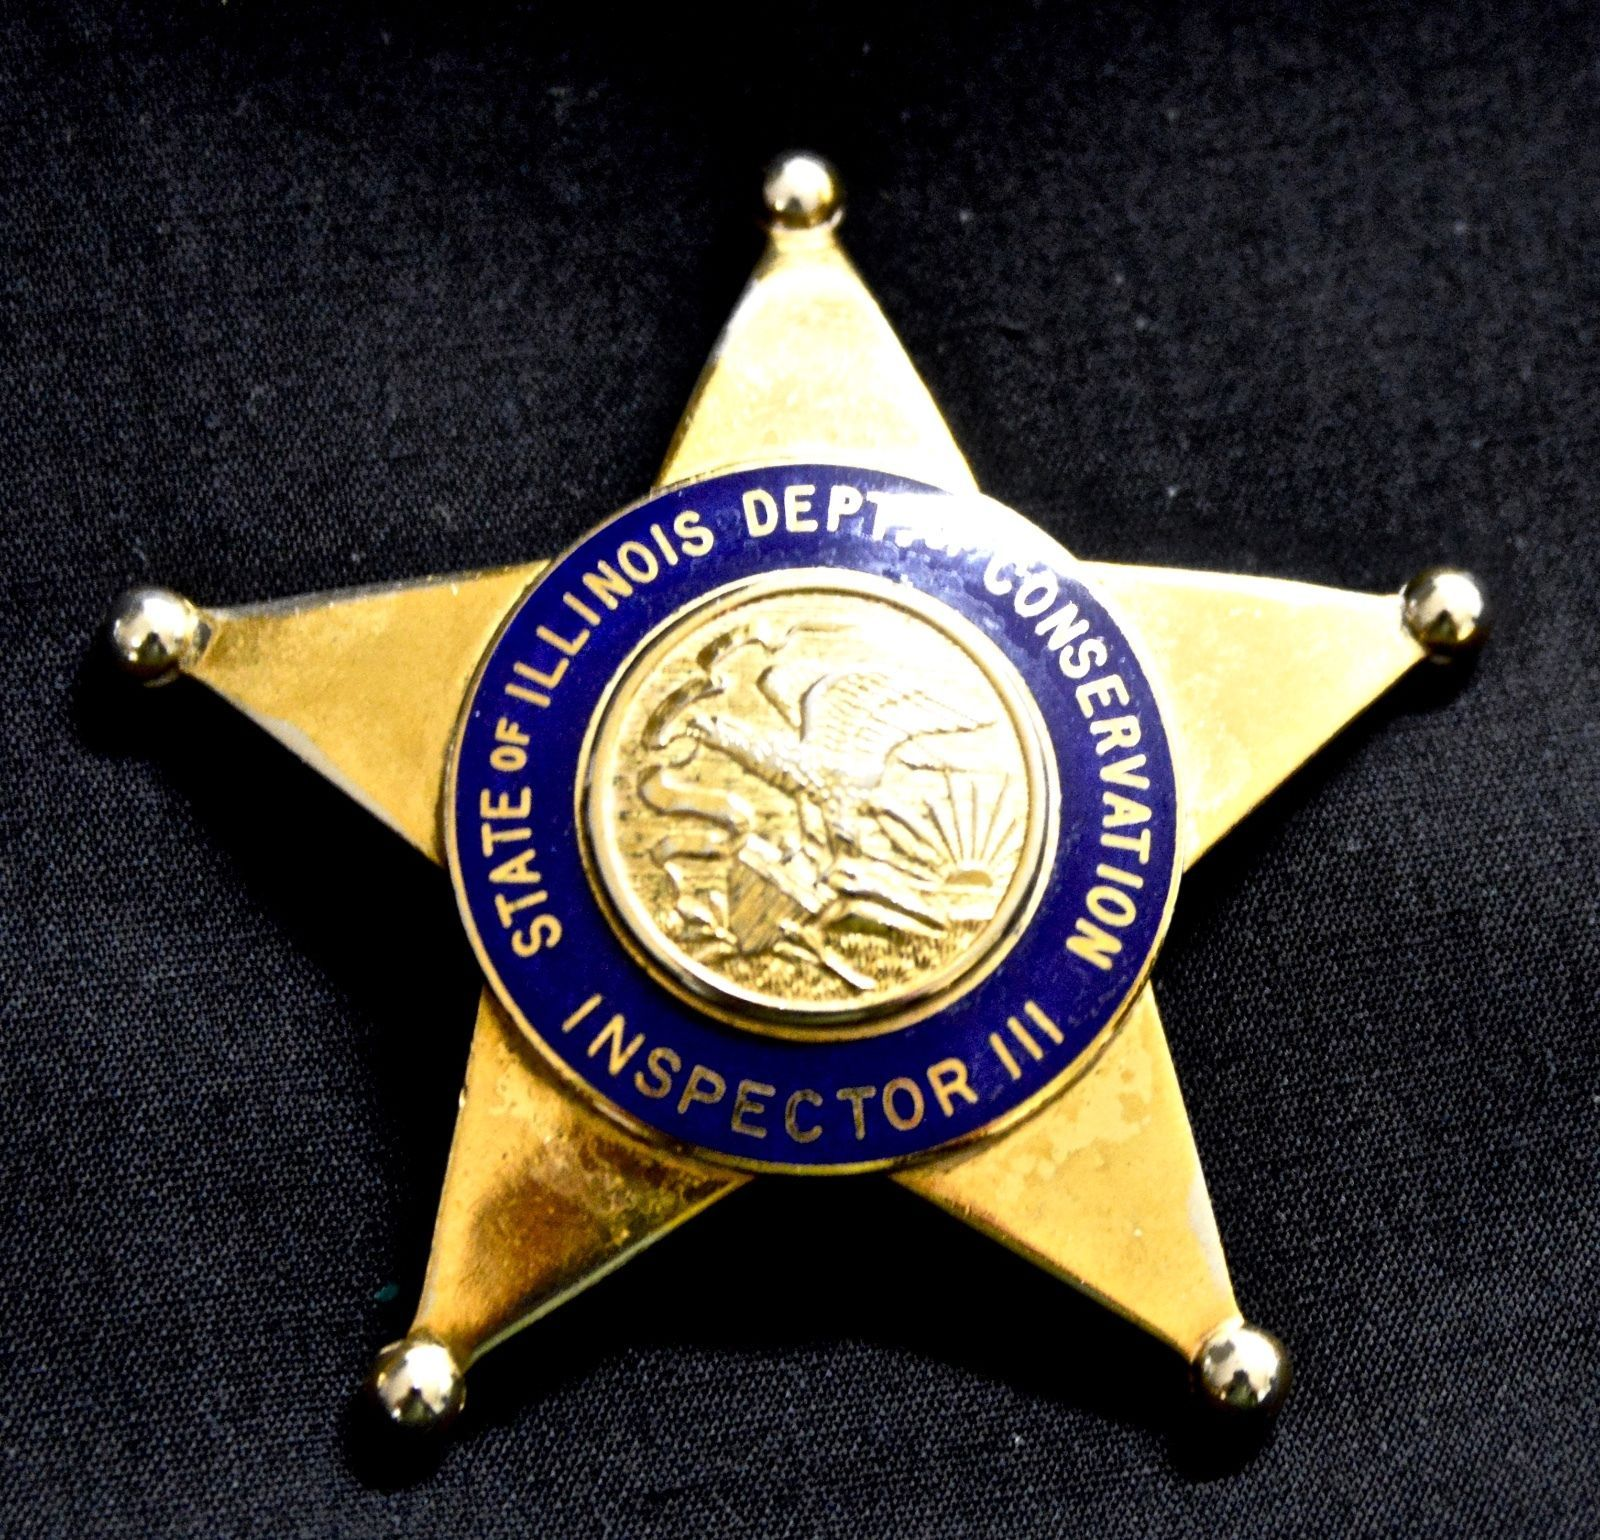 Inspector III, Department of Conservation, States of